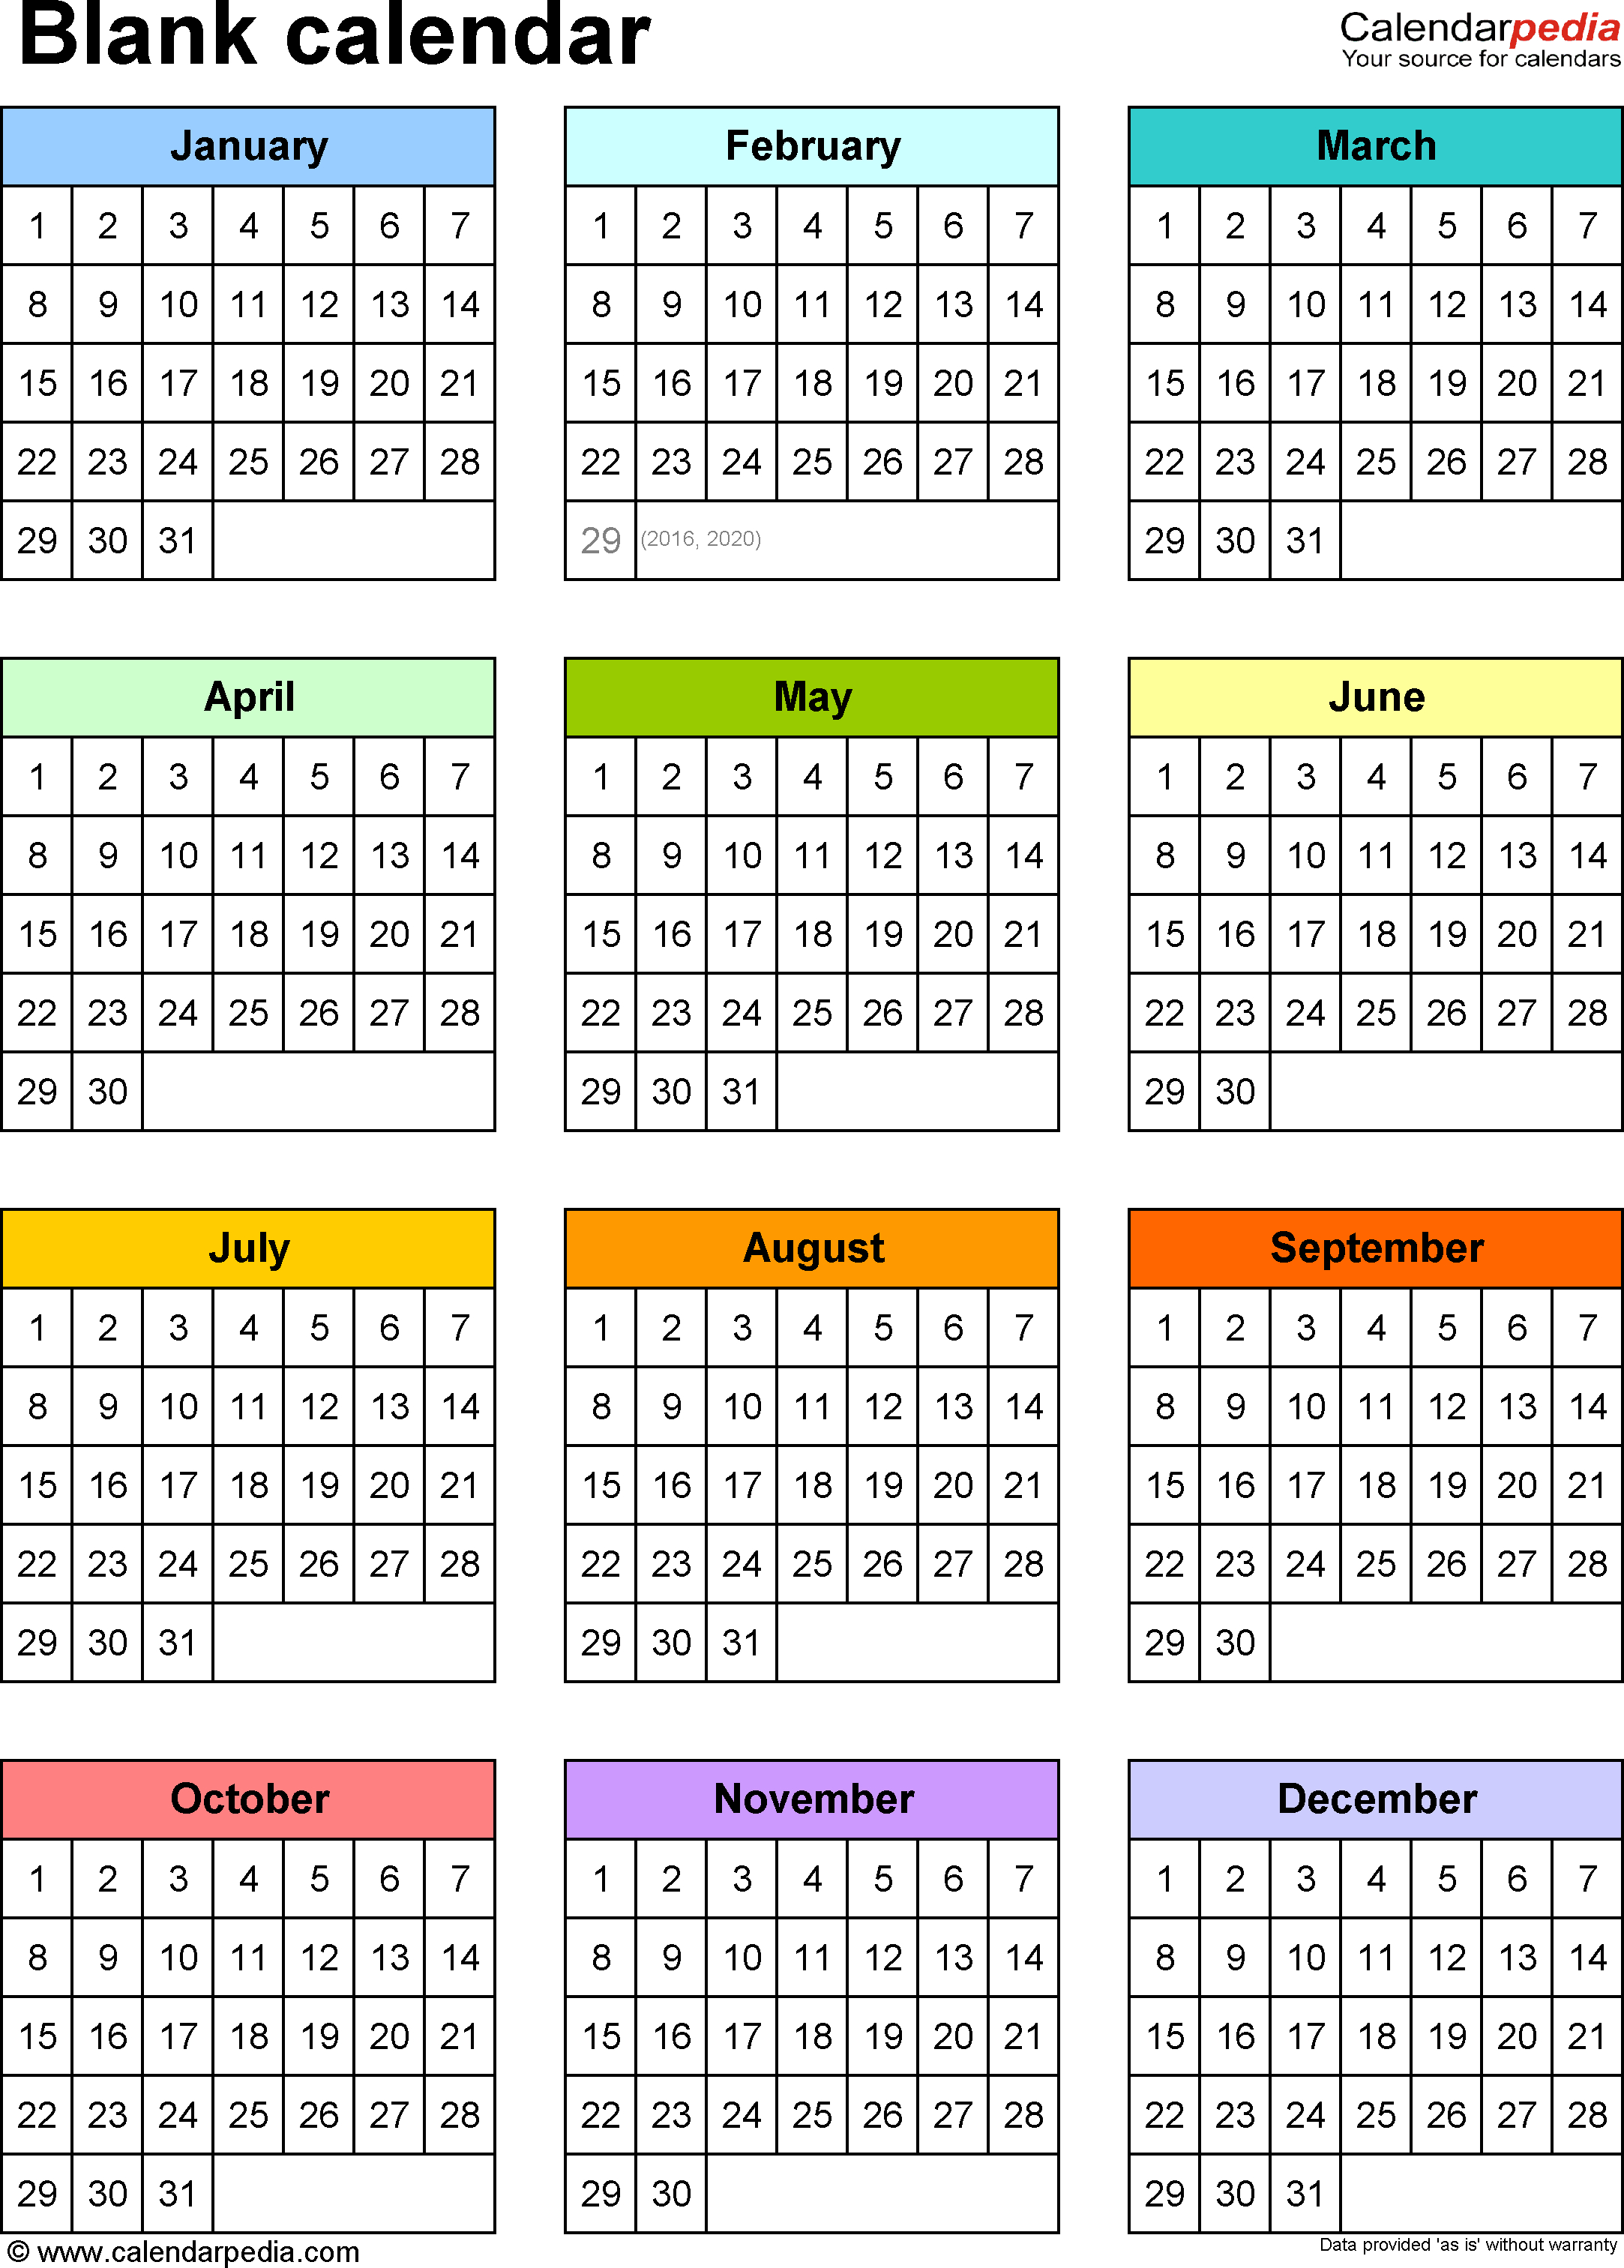 Blank Calendar - 9 Free Printable Microsoft Word Templates for Year At A Glance Calendar Template